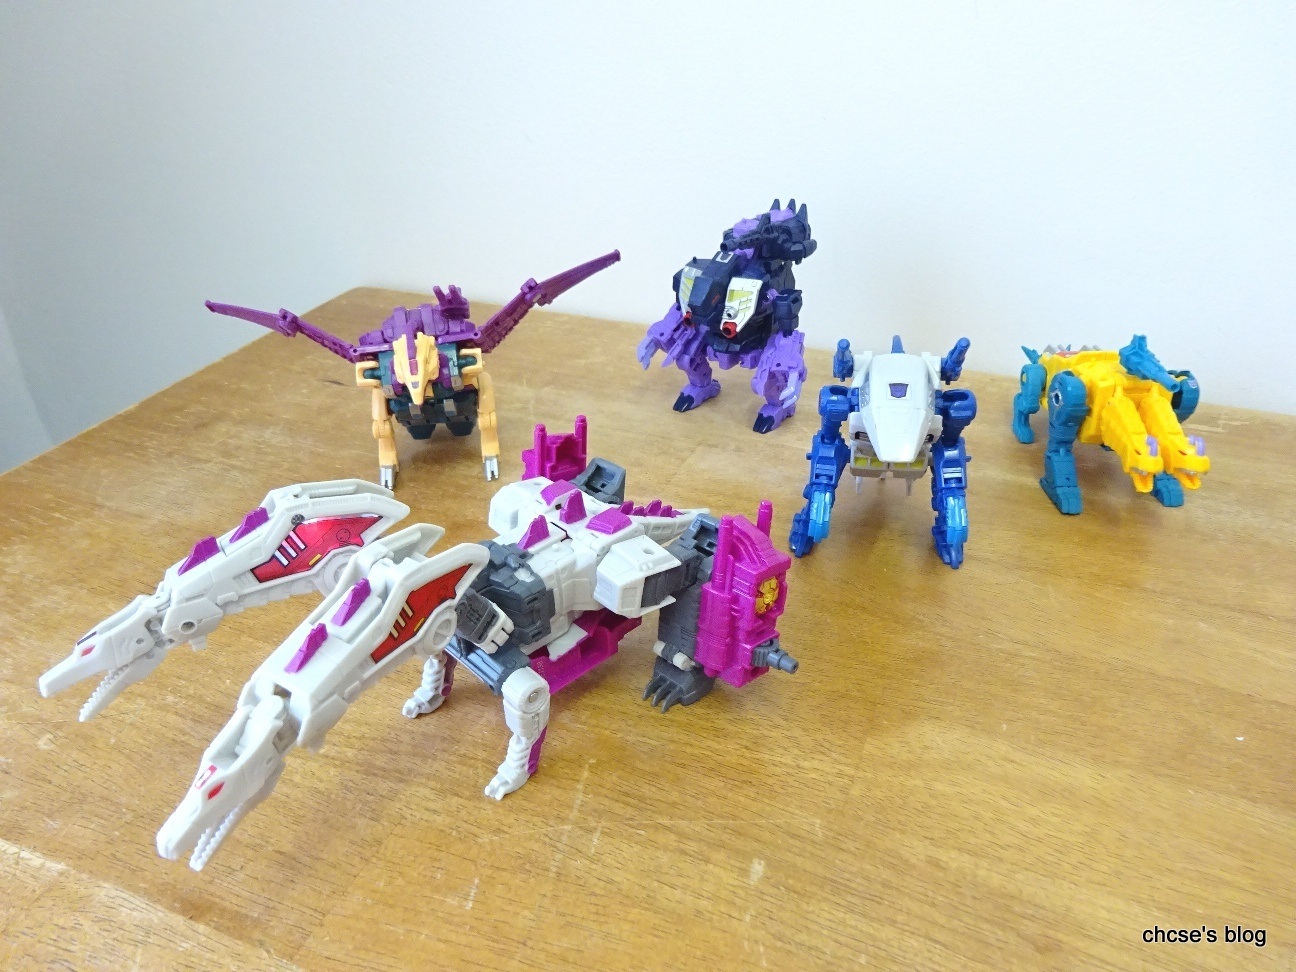 ChCse's blog: Toy Review: Transformers Generations Power of